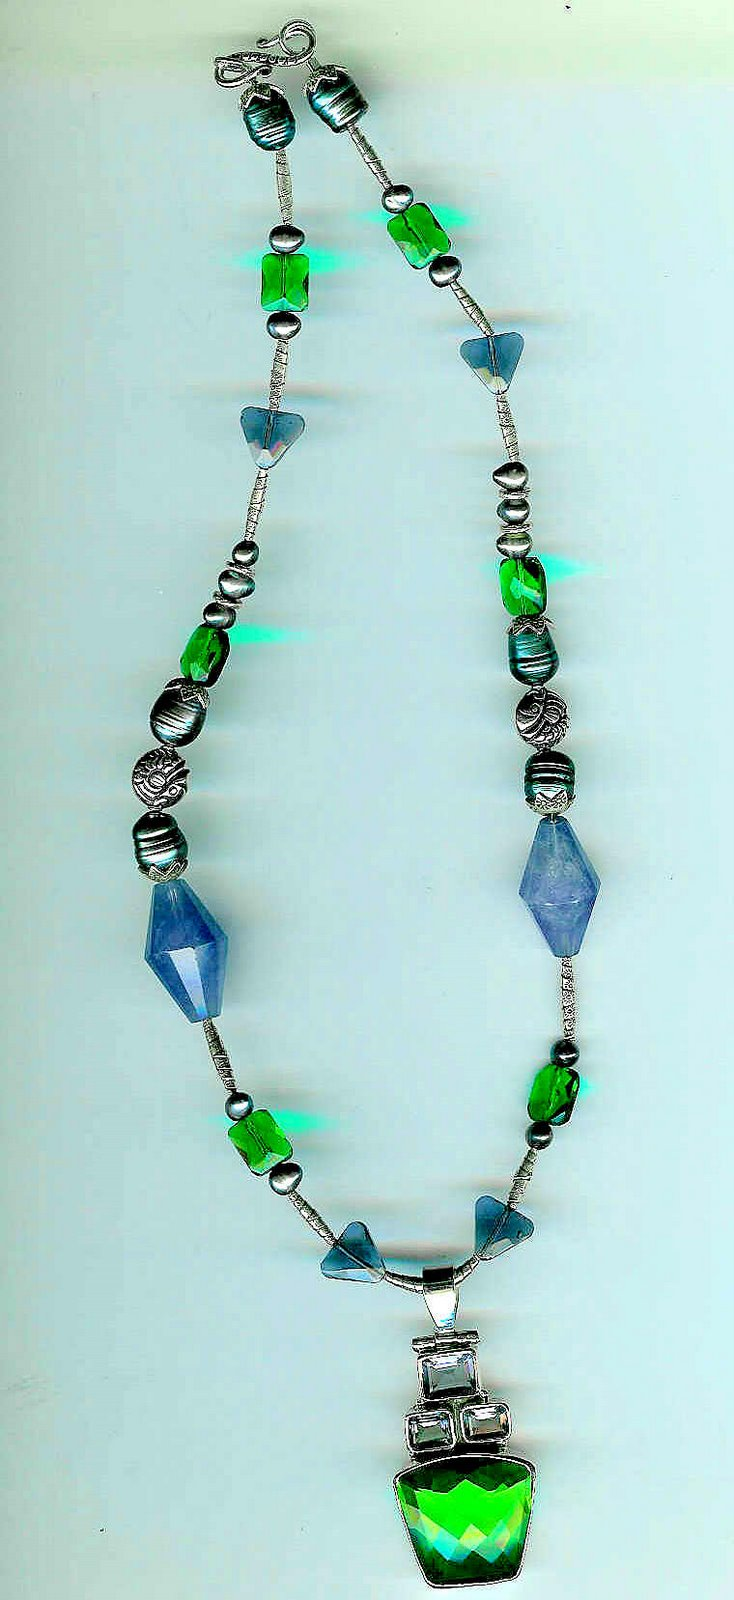 23. Green Crystal Pendant, Amethysts, Crystals and Karen Hill Thai Sterling Silver